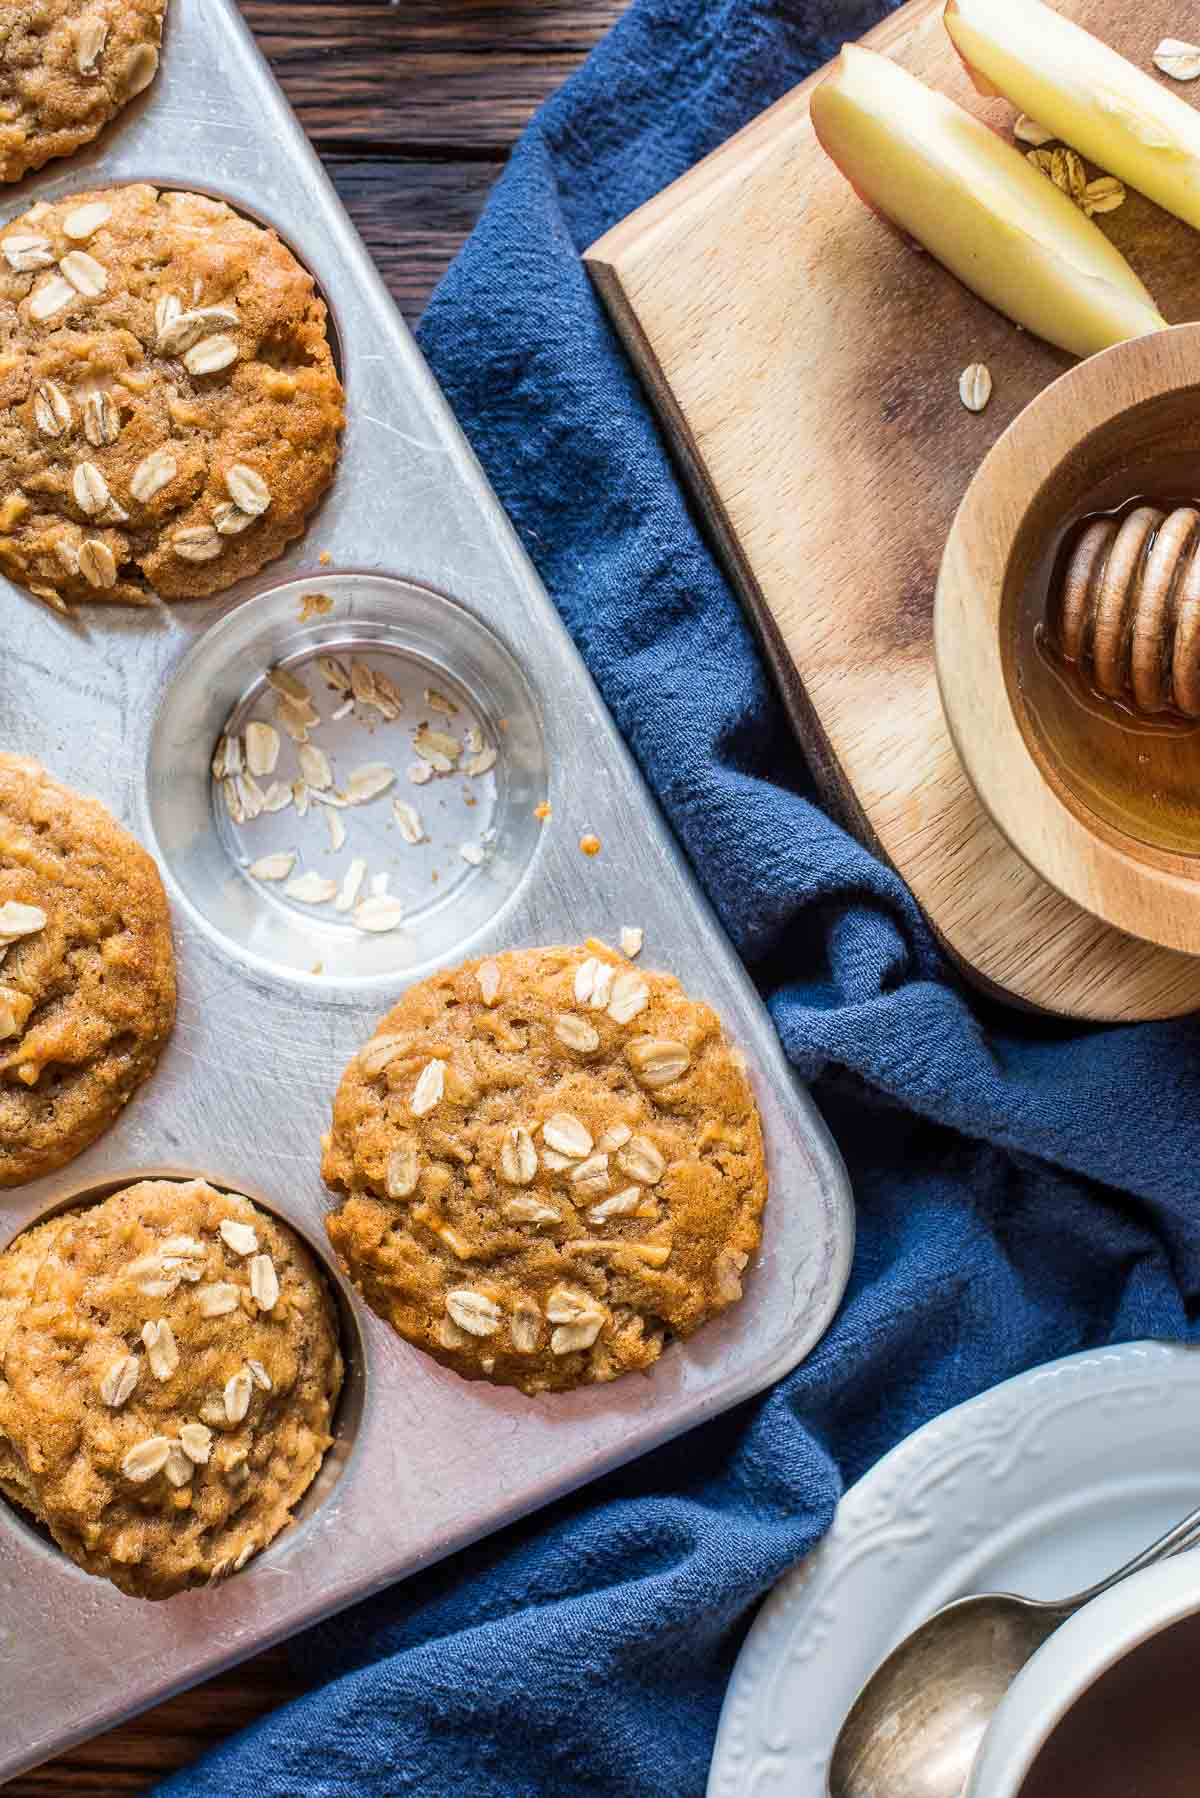 These Apple Oatmeal Muffins are a great make ahead healthy breakfast for busy mornings.